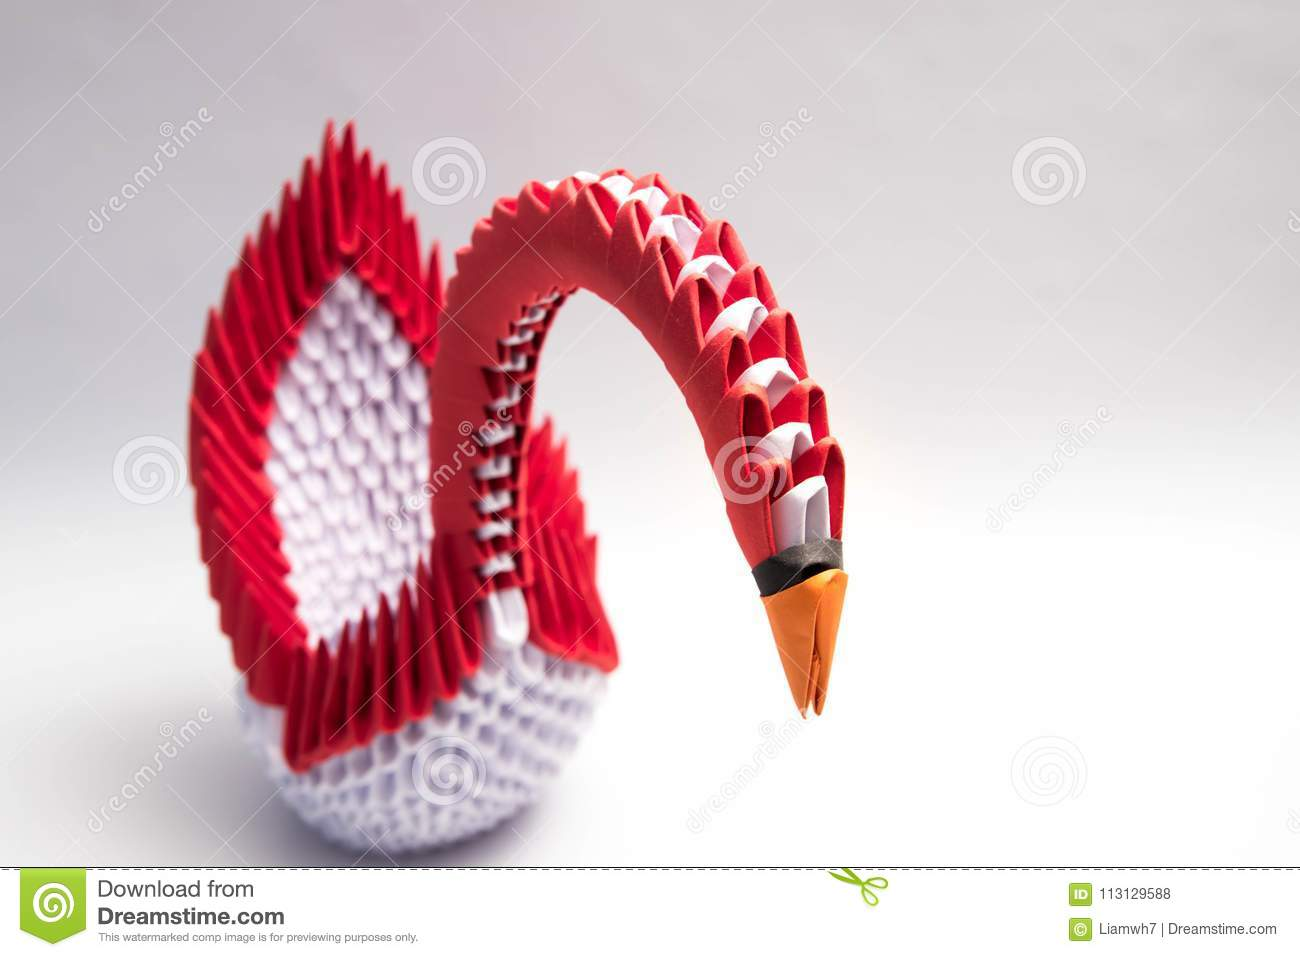 3d Origami Swan Bird Red Stock Photo Image Of Colorful 113129588